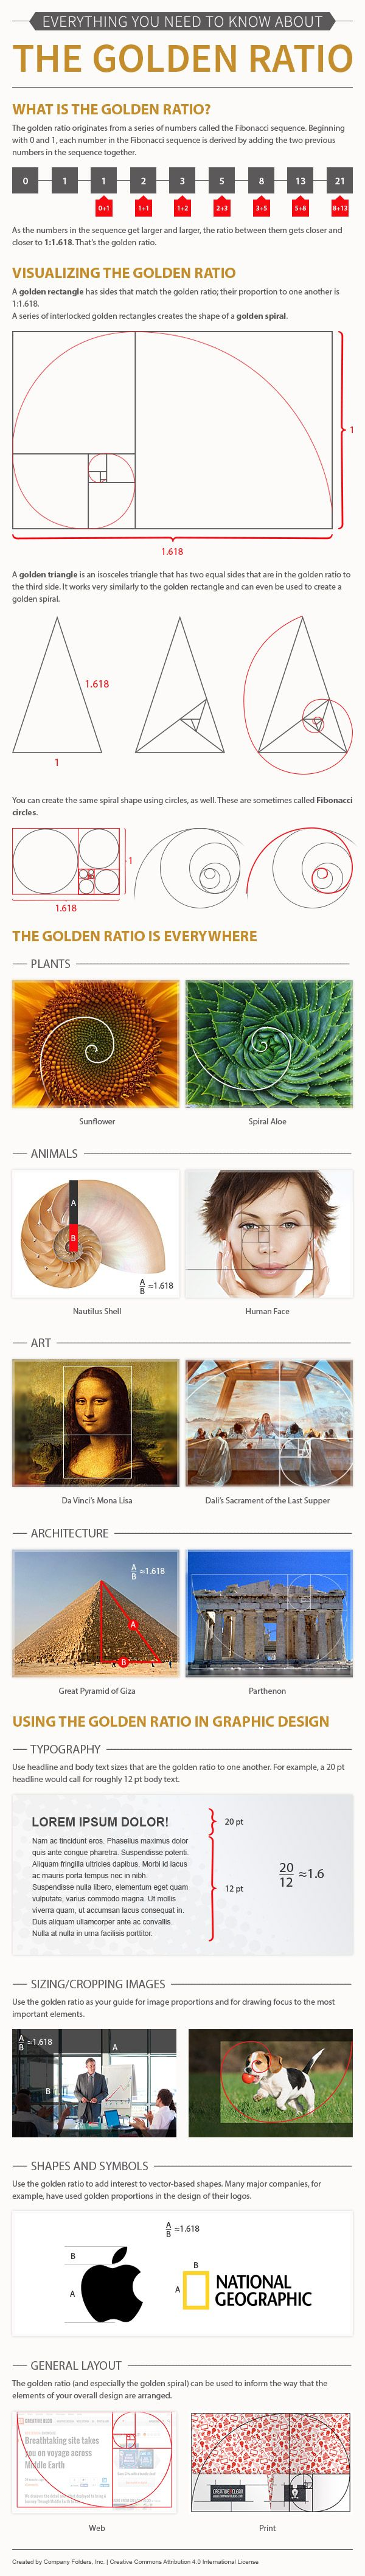 Proporção áurea | Everything you Need to Know About The Golden Ratio…